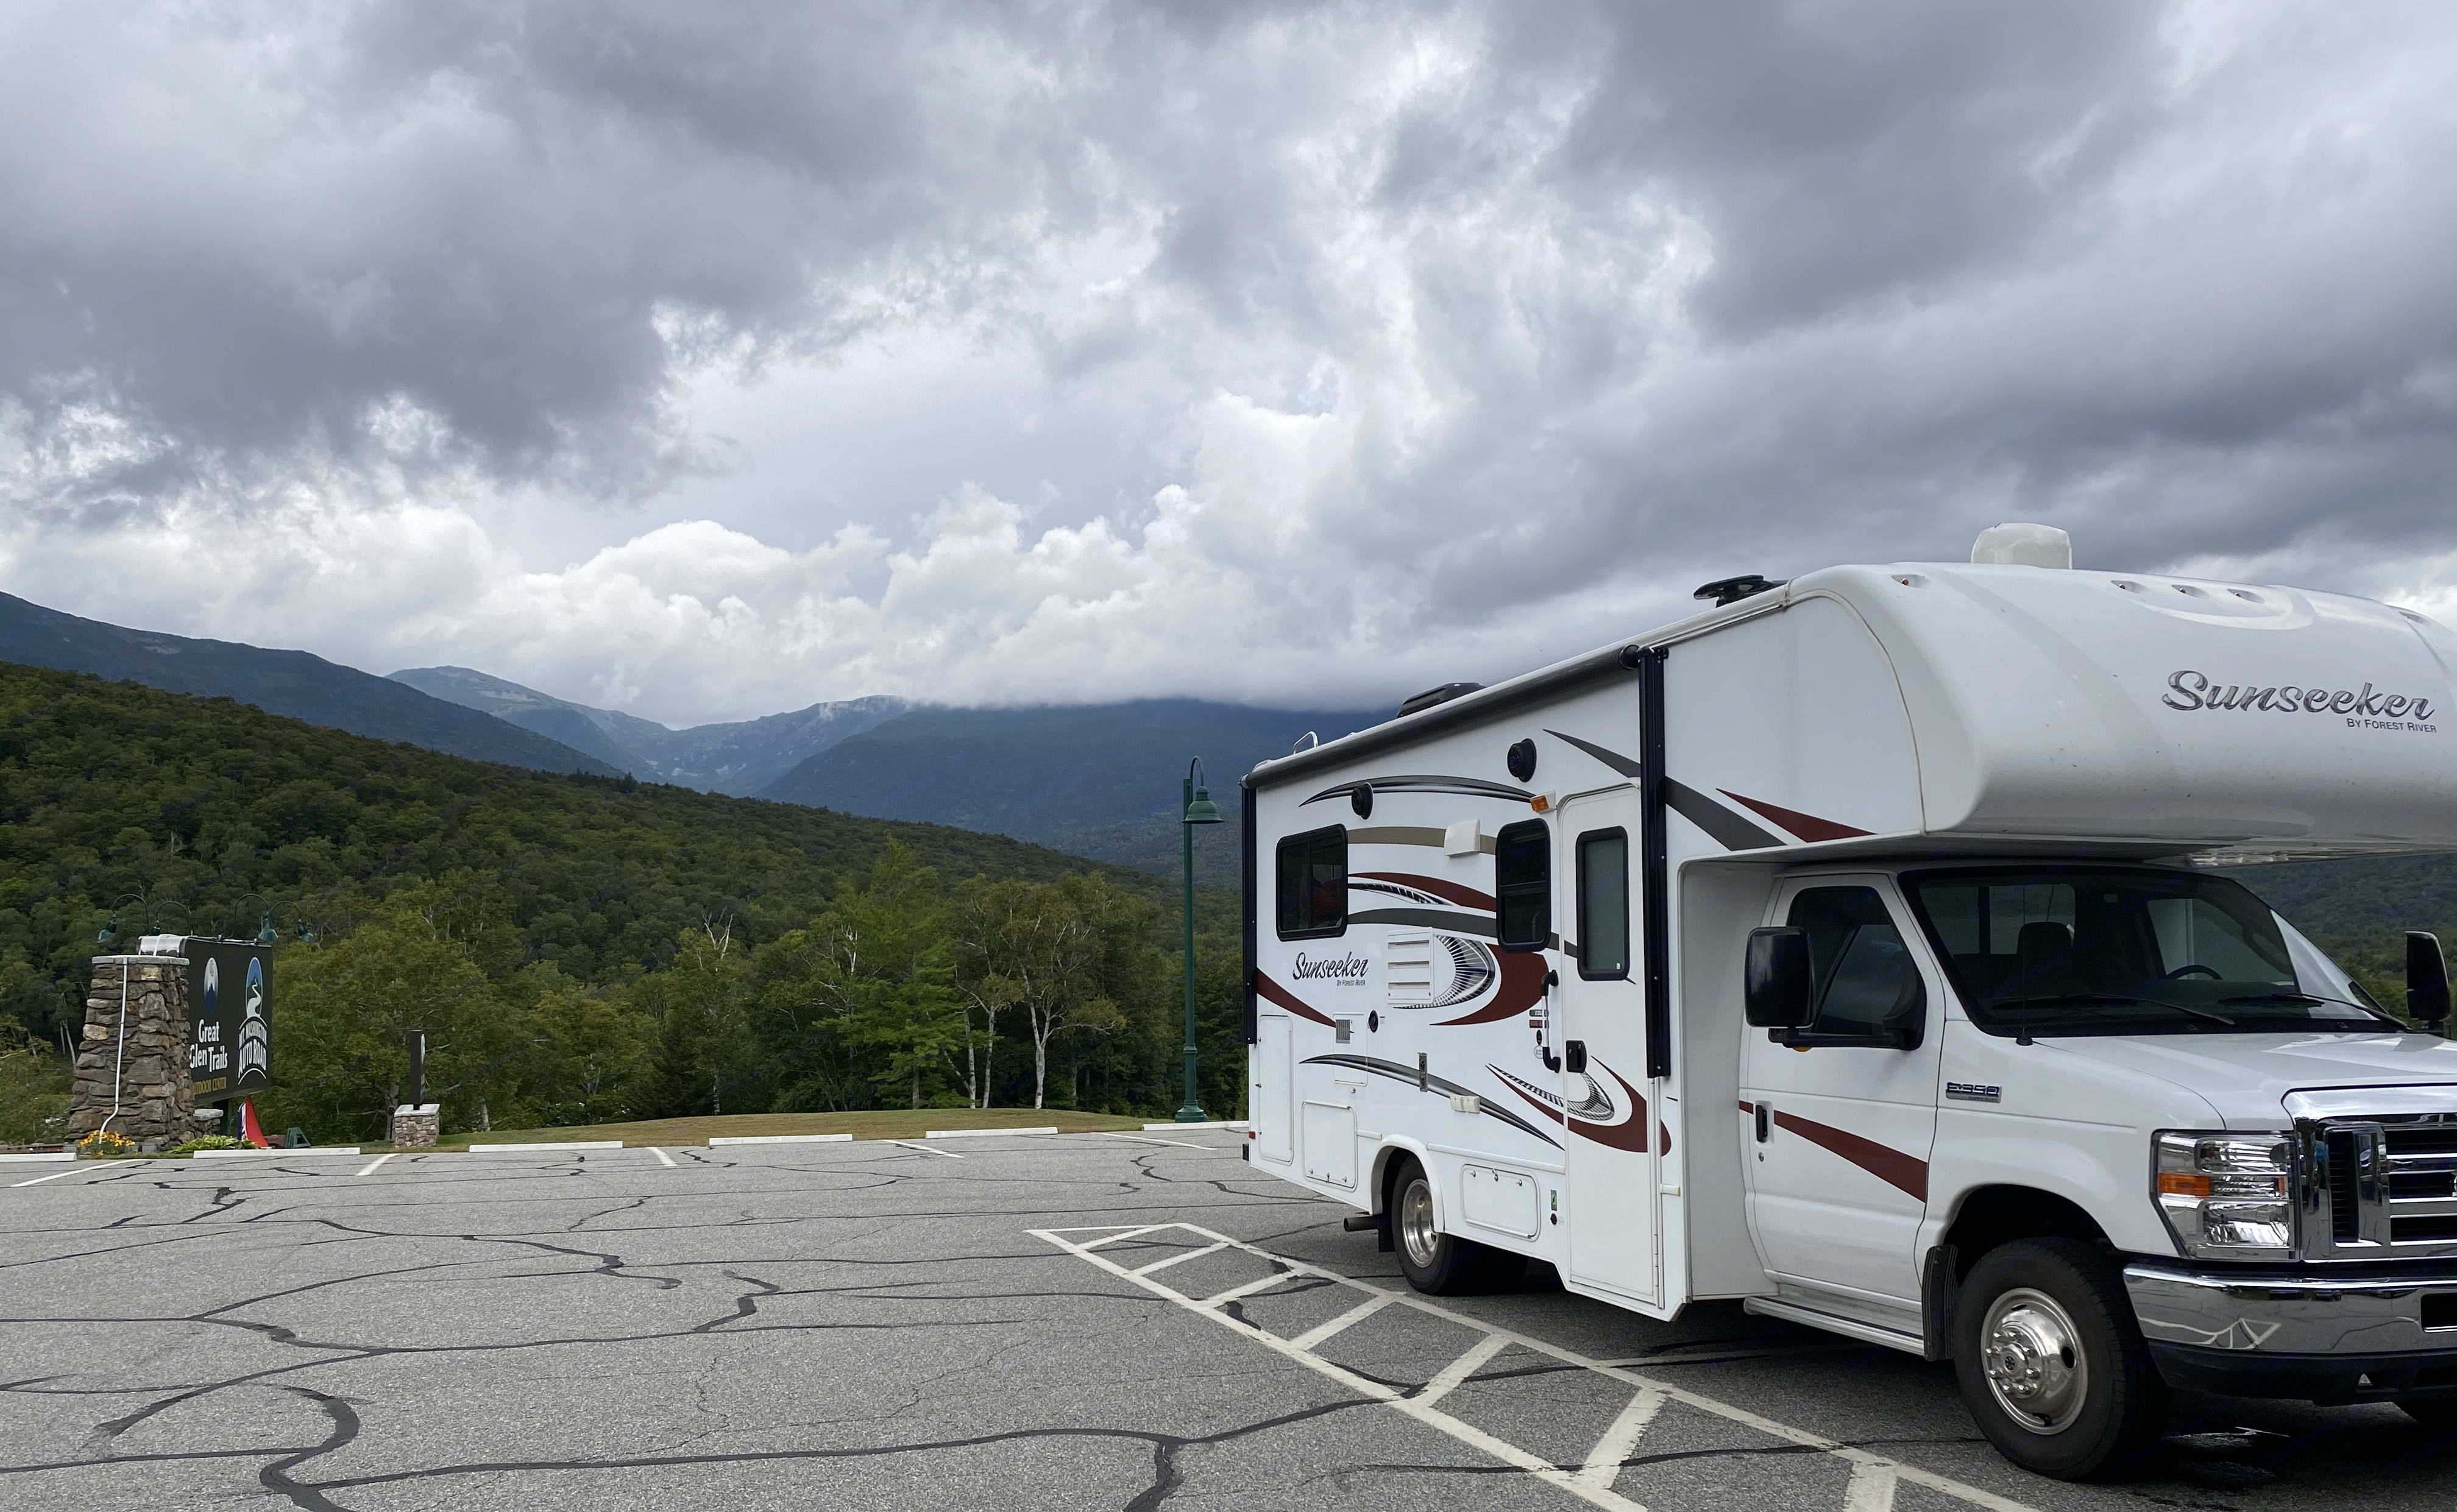 parking lot at Great Glen Trails and the Mt Washington Auto Road - an extraordinary place!. Forest River Sunseeker 2016